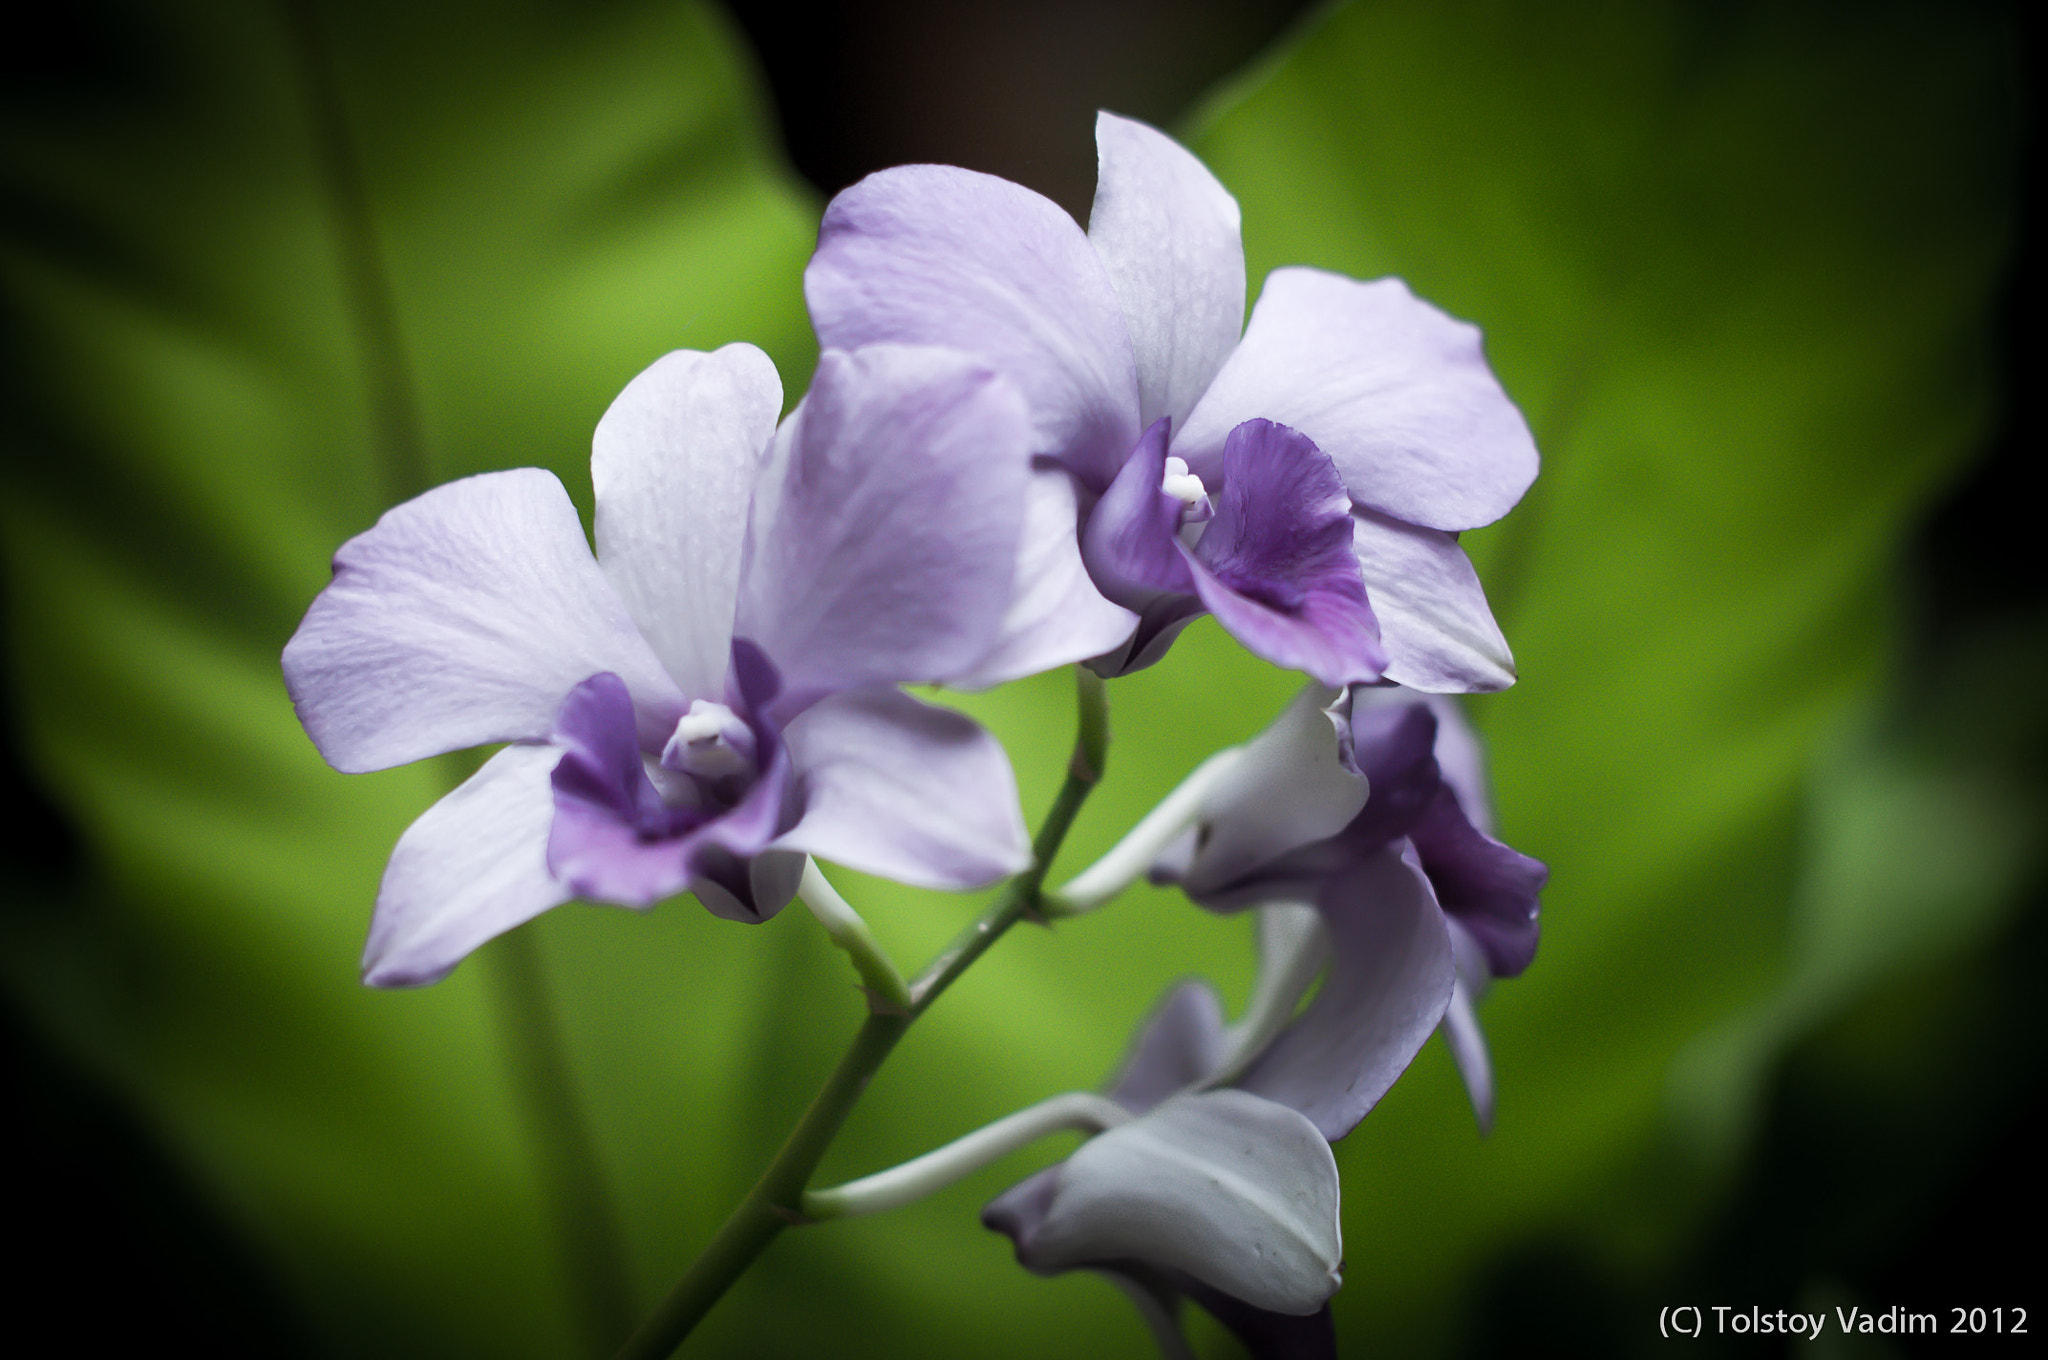 Photograph excellence violet by Vadim Tolstoy on 500px